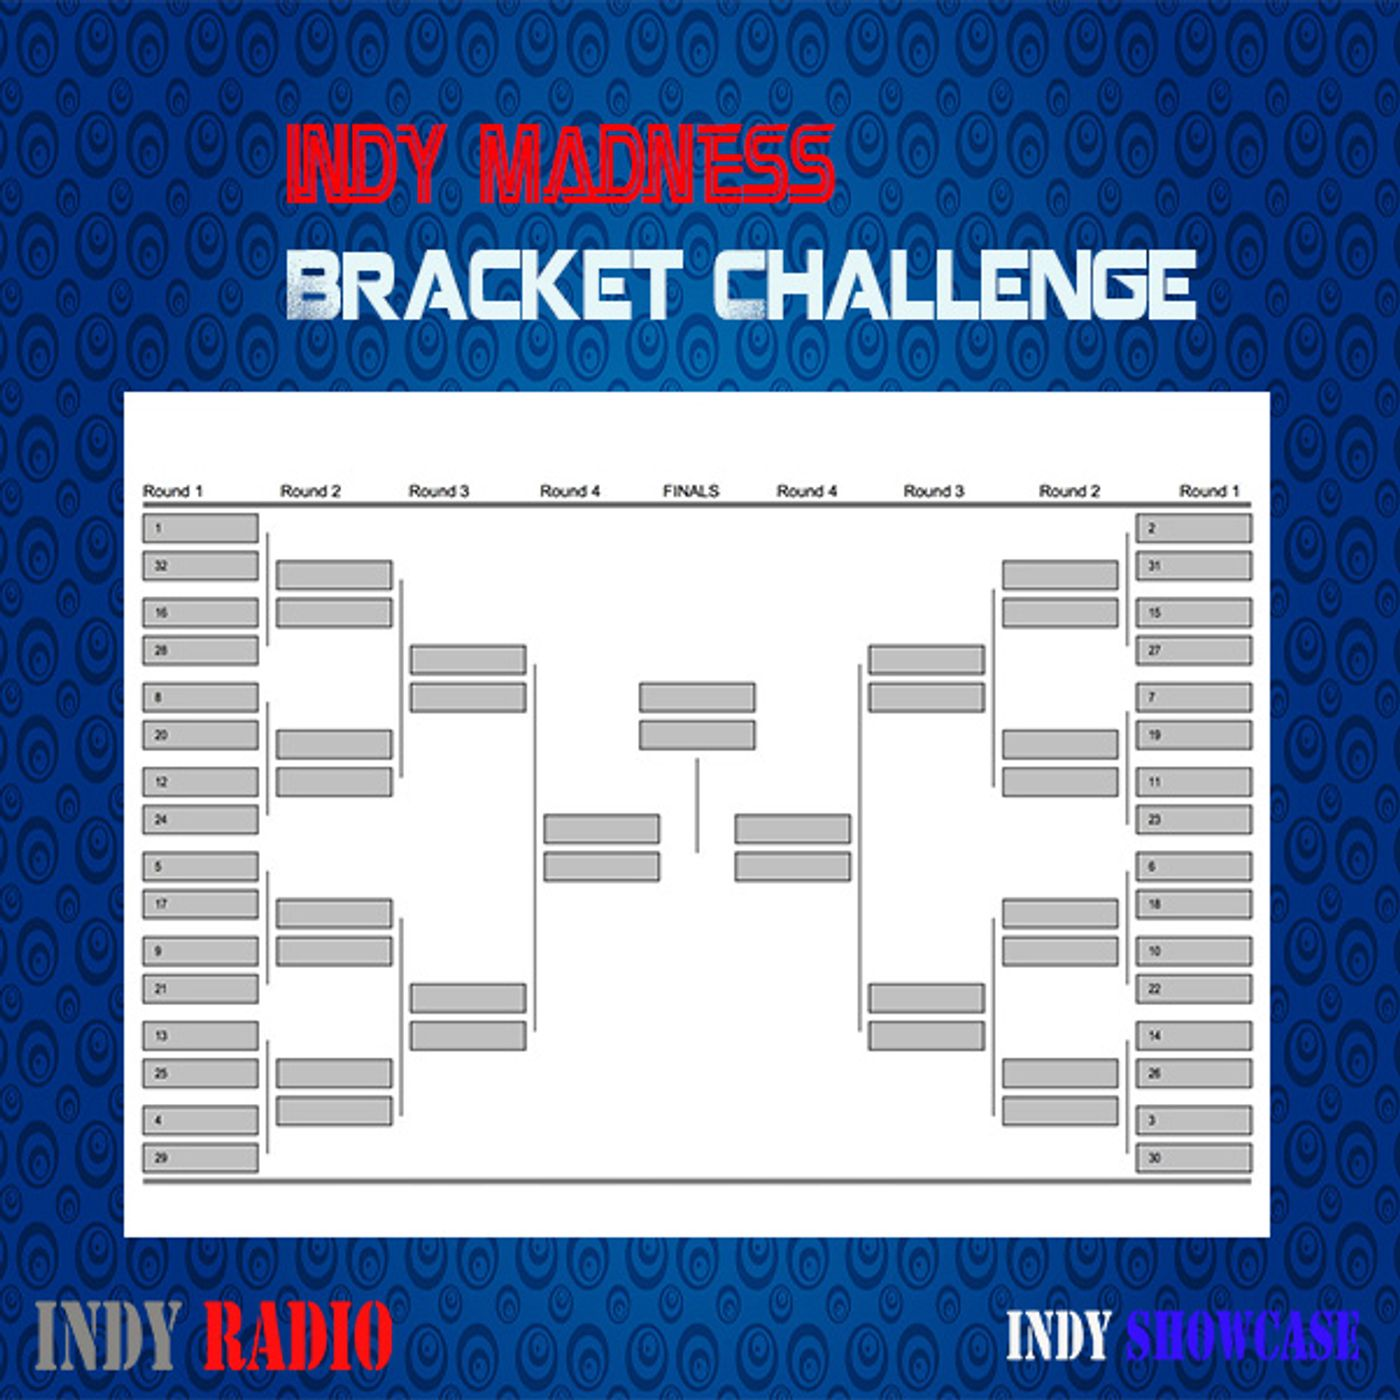 Indy Madness Bracket Challenge